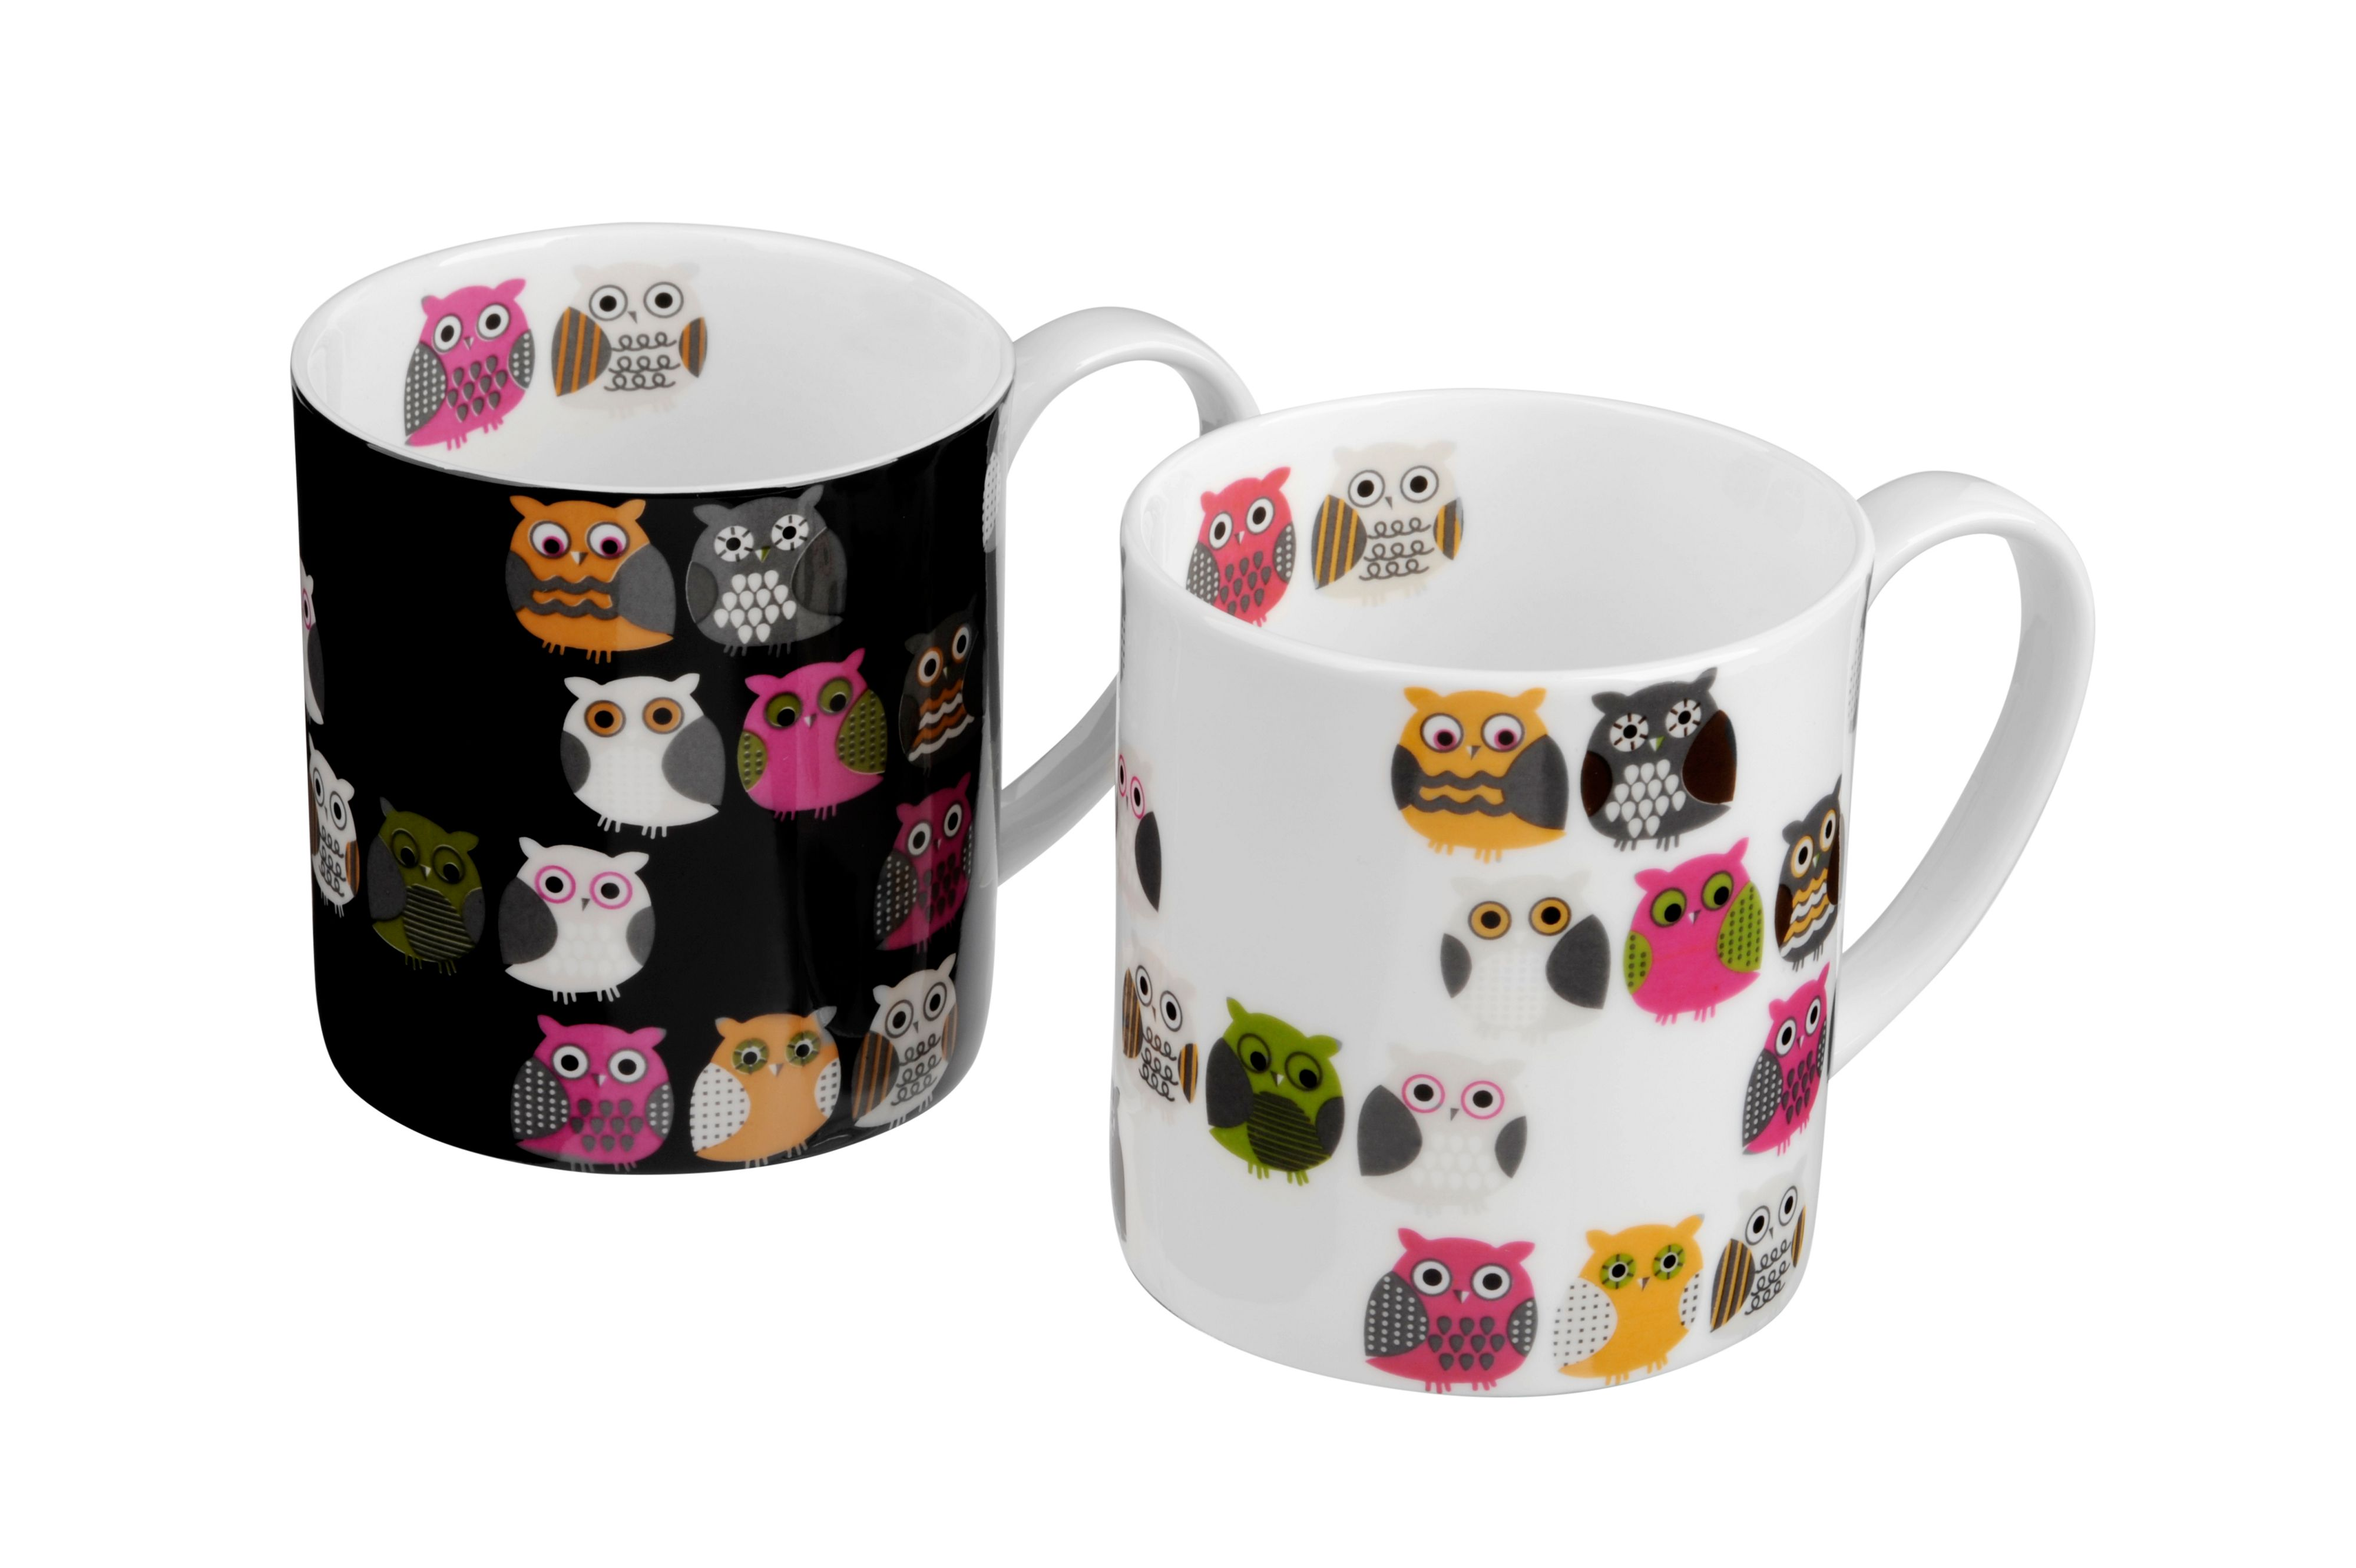 Pair of bone china Hoot mugs